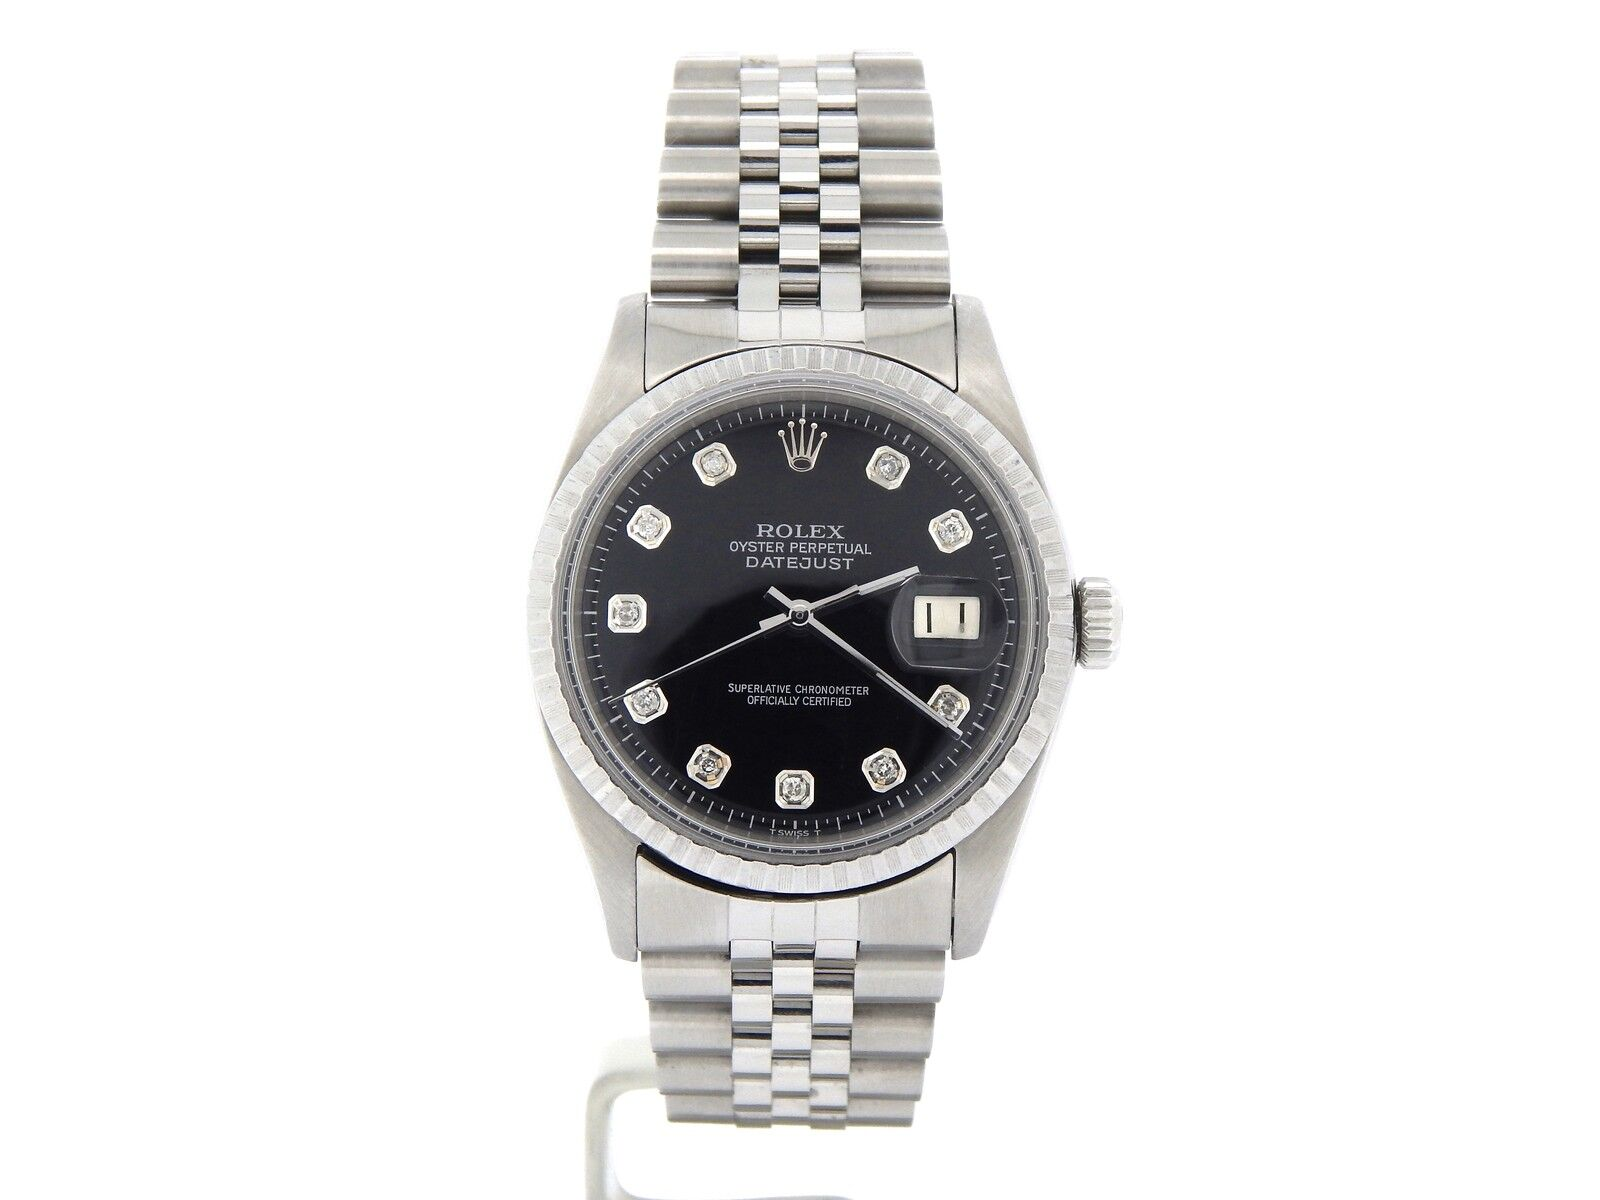 Rolex Datejust Mens SS Stainless Steel Jubilee Black Diamond Dial Watch 1603